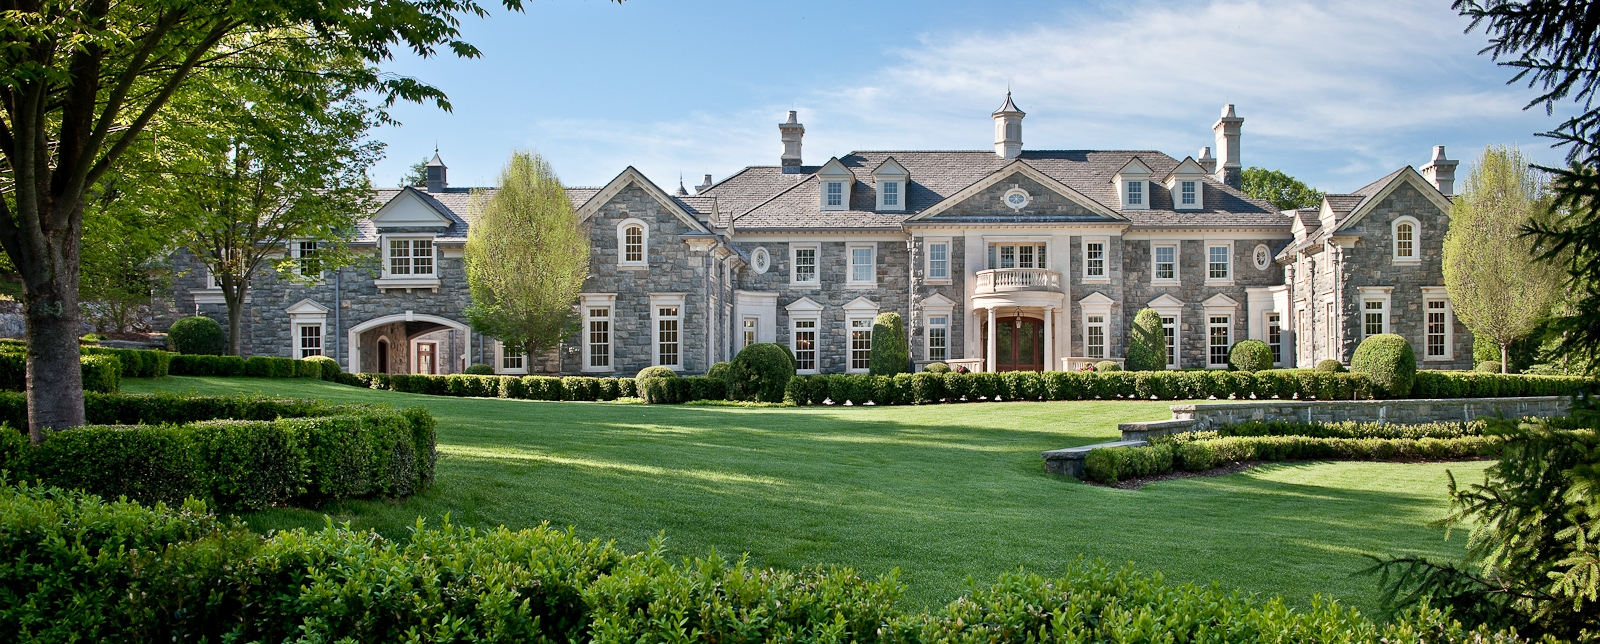 Property For Sale at The Stone Mansion